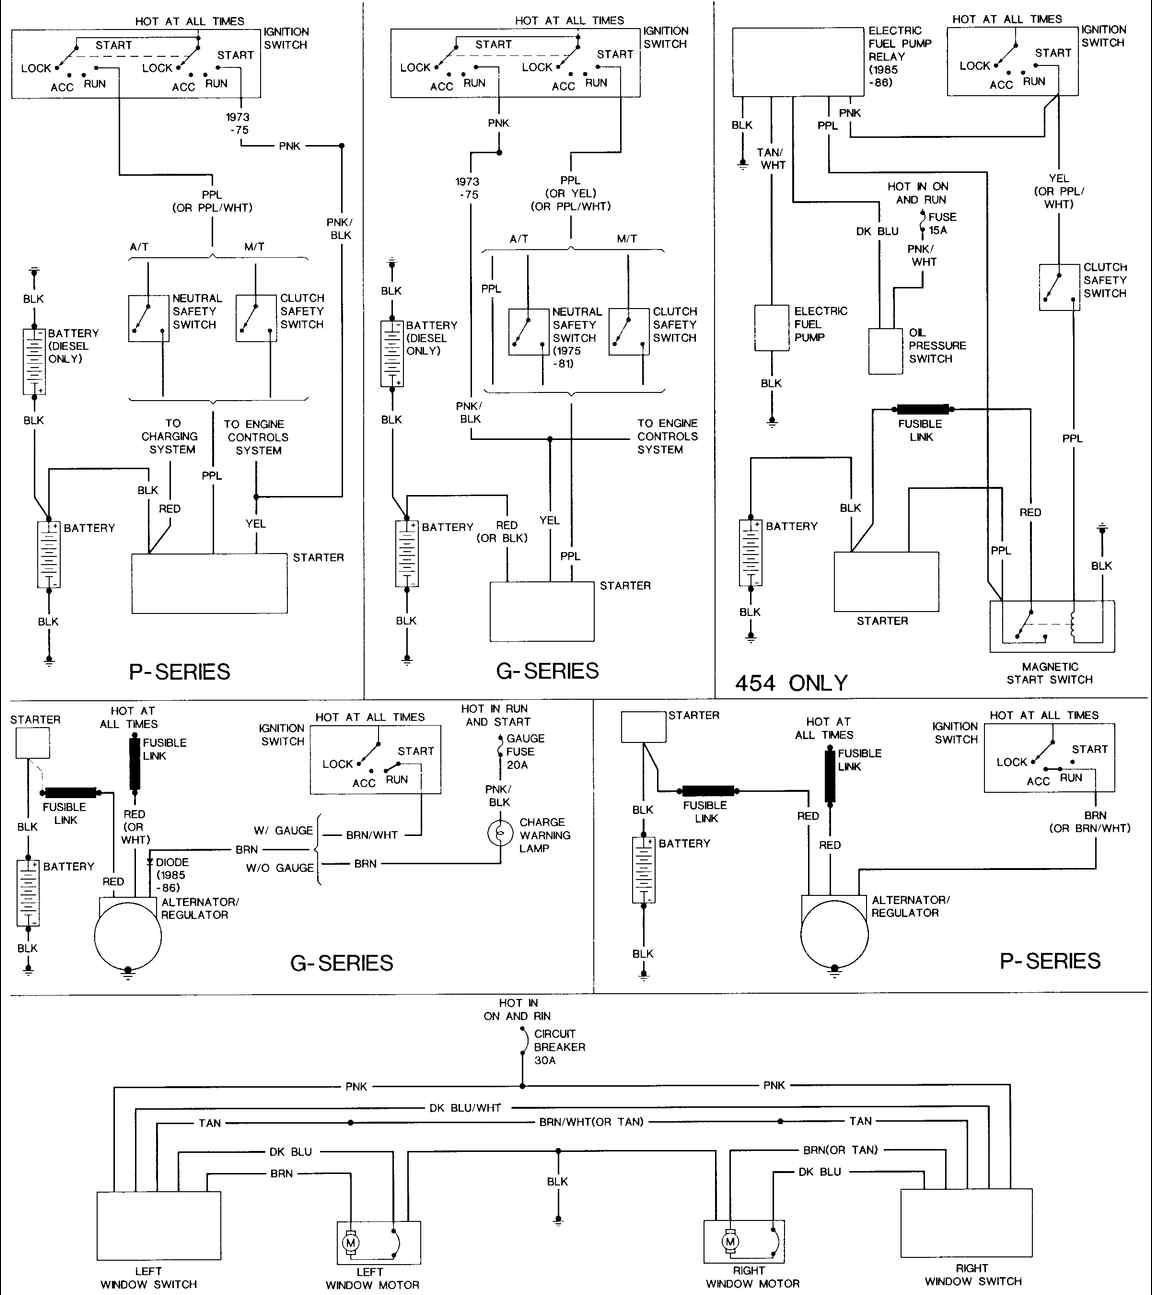 1986 chevy truck starter wiring diagram simplex duct detector 2098 85 van the